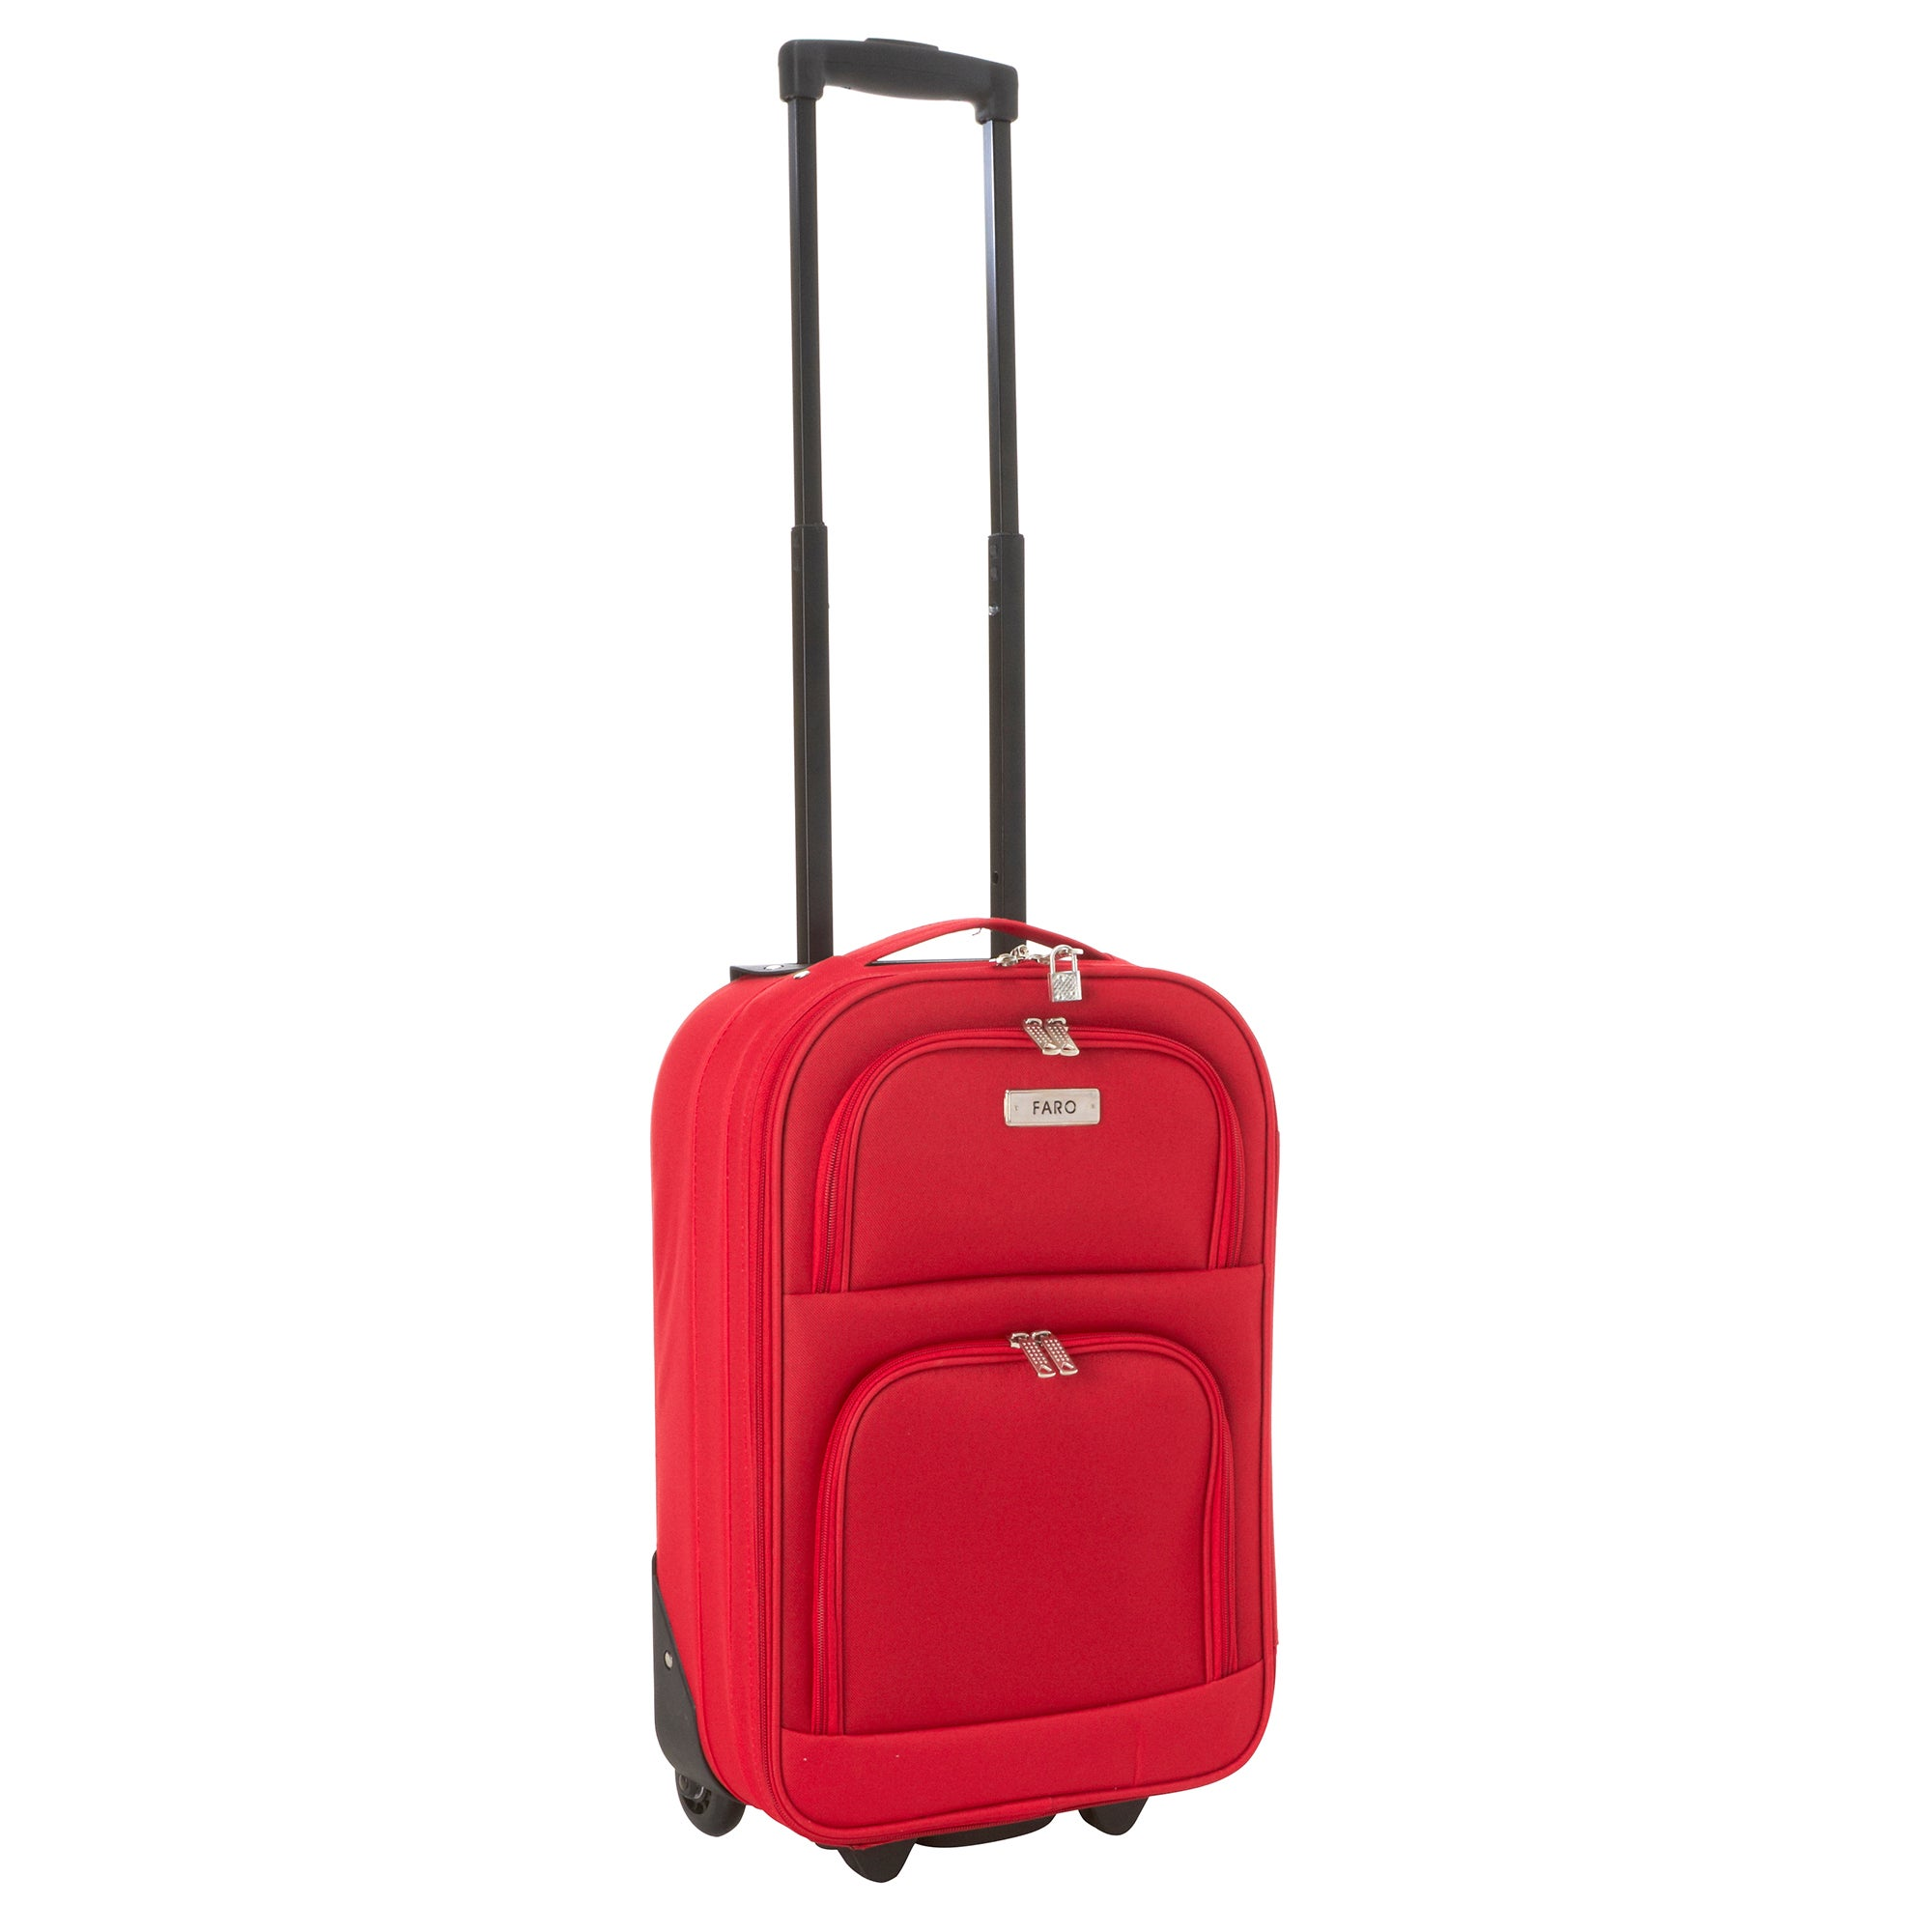 Faro Red 18 Inch Cabin Case